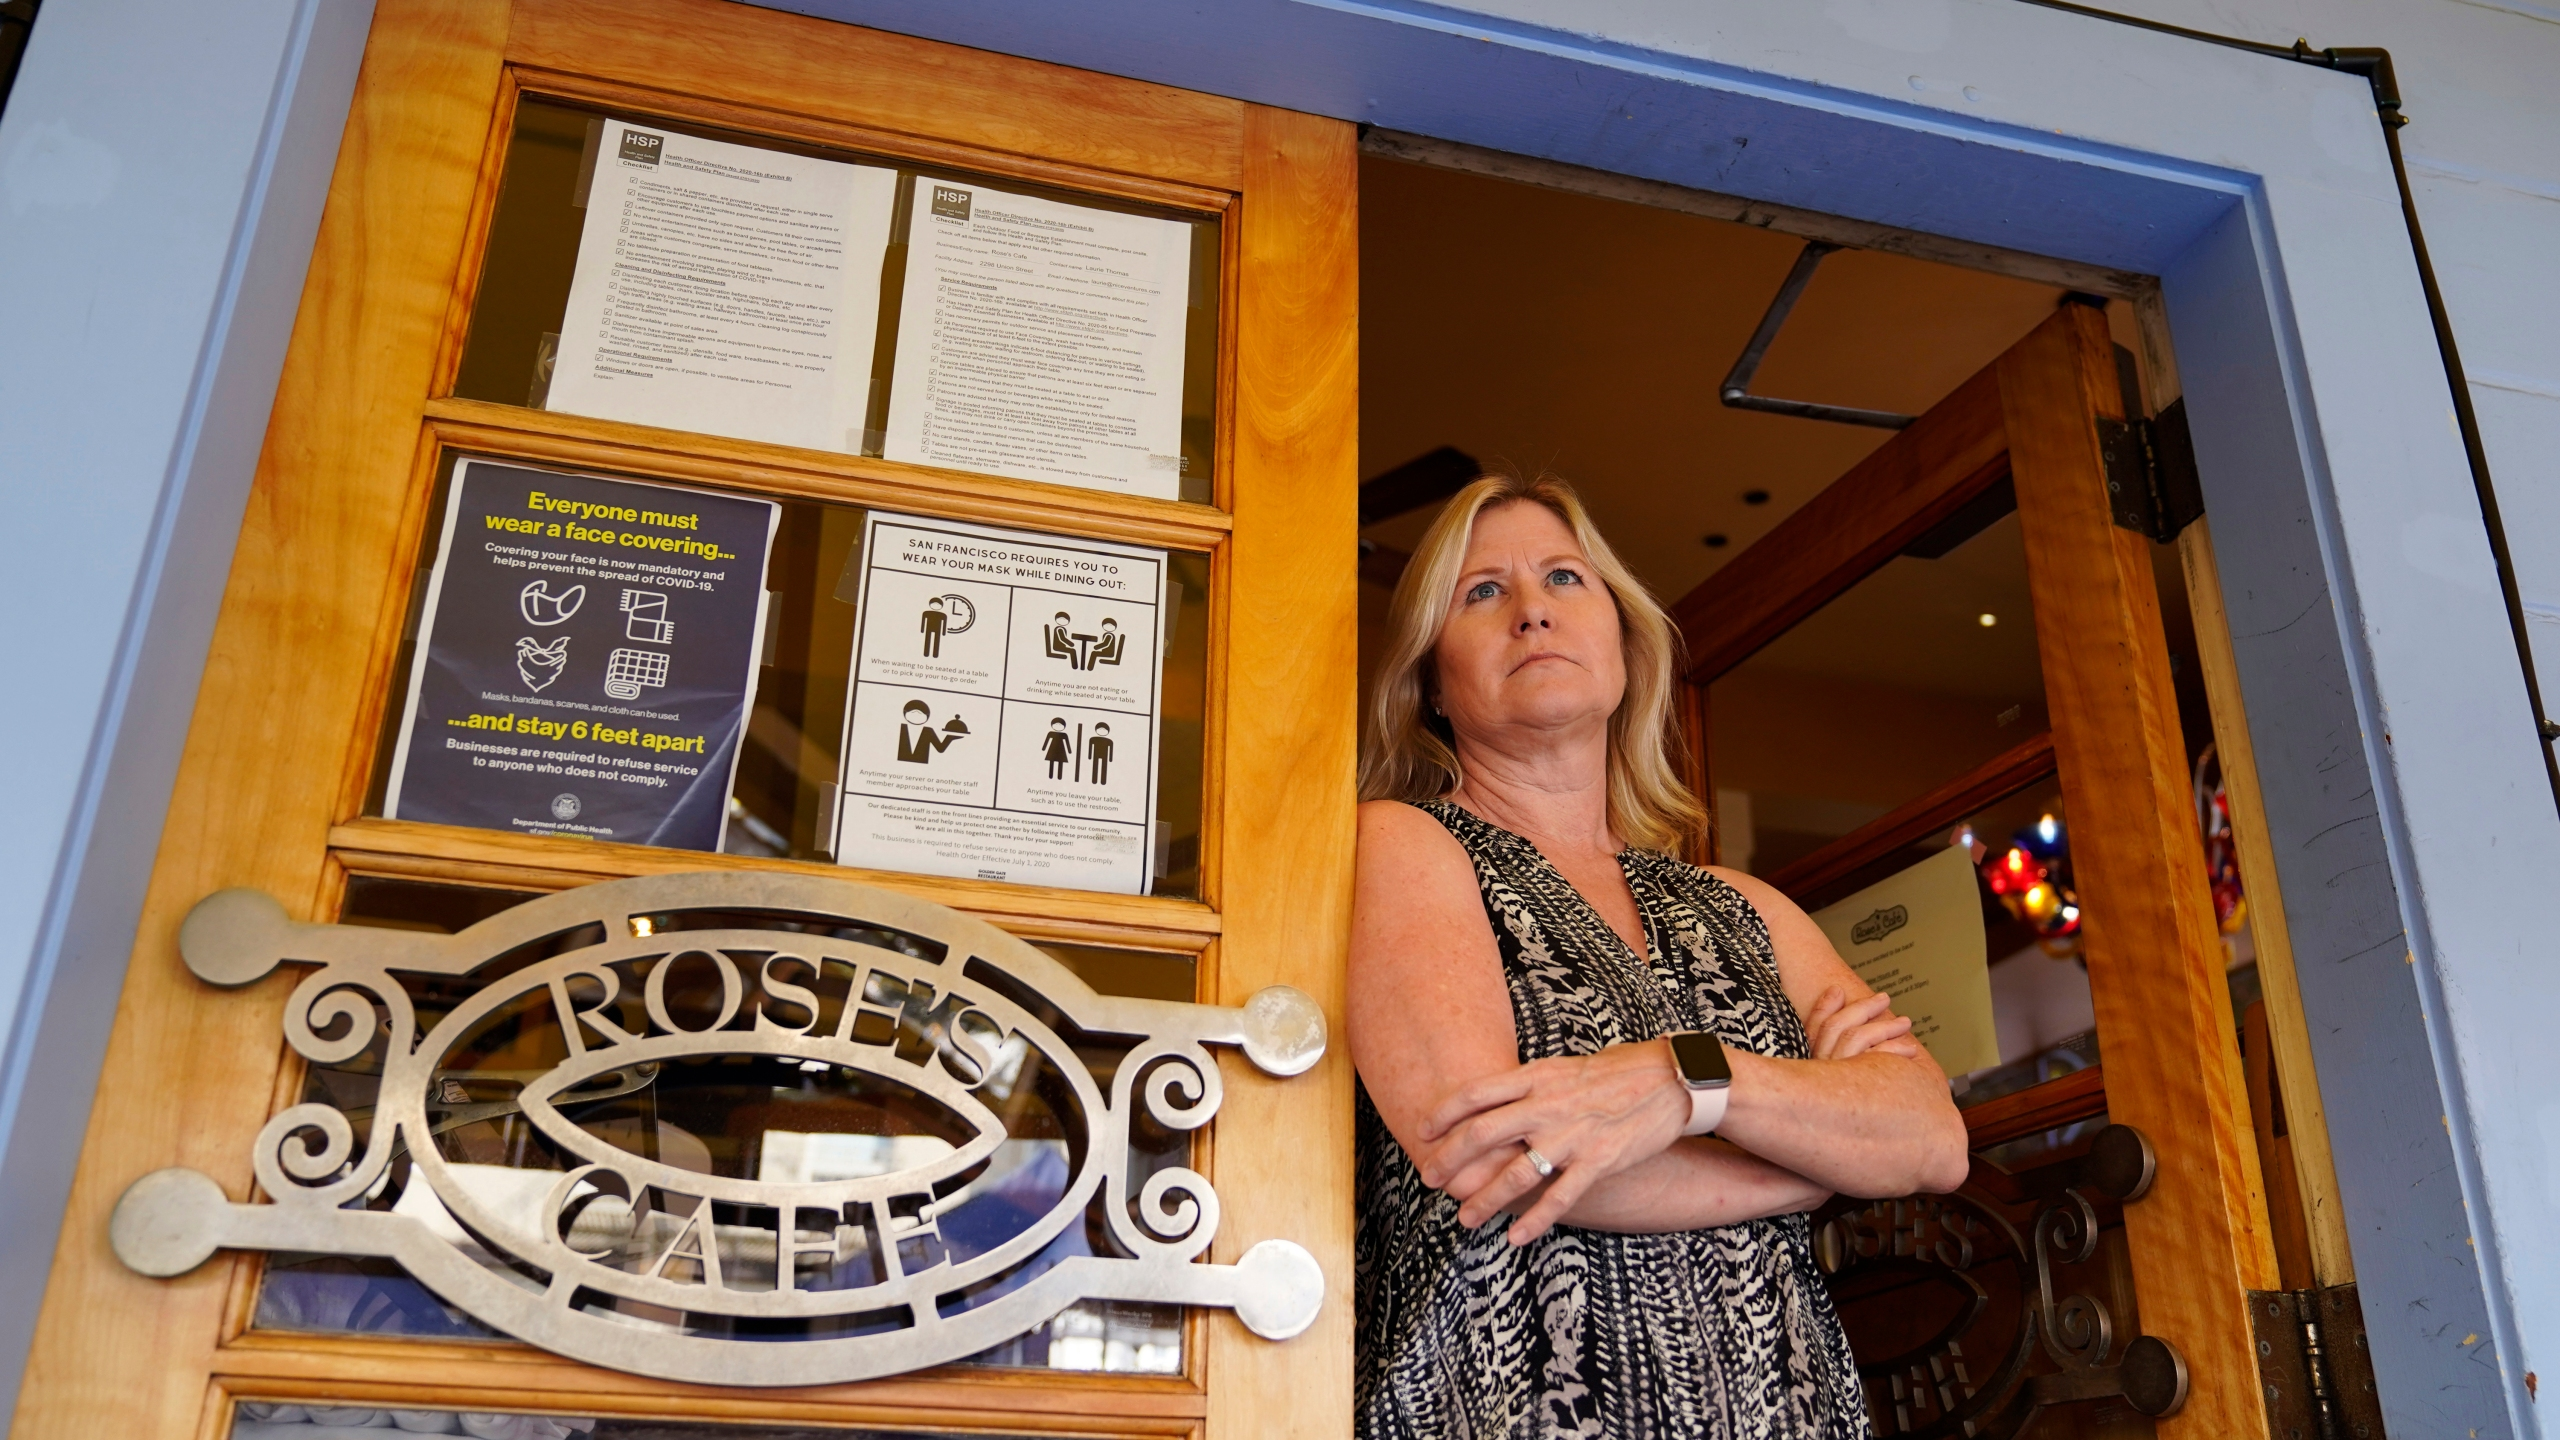 Laurie Thomas poses at the entrance to her Rose's Cafe restaurant in San Francisco on Sept. 28, 2020. (Eric Risberg / Associated Press)